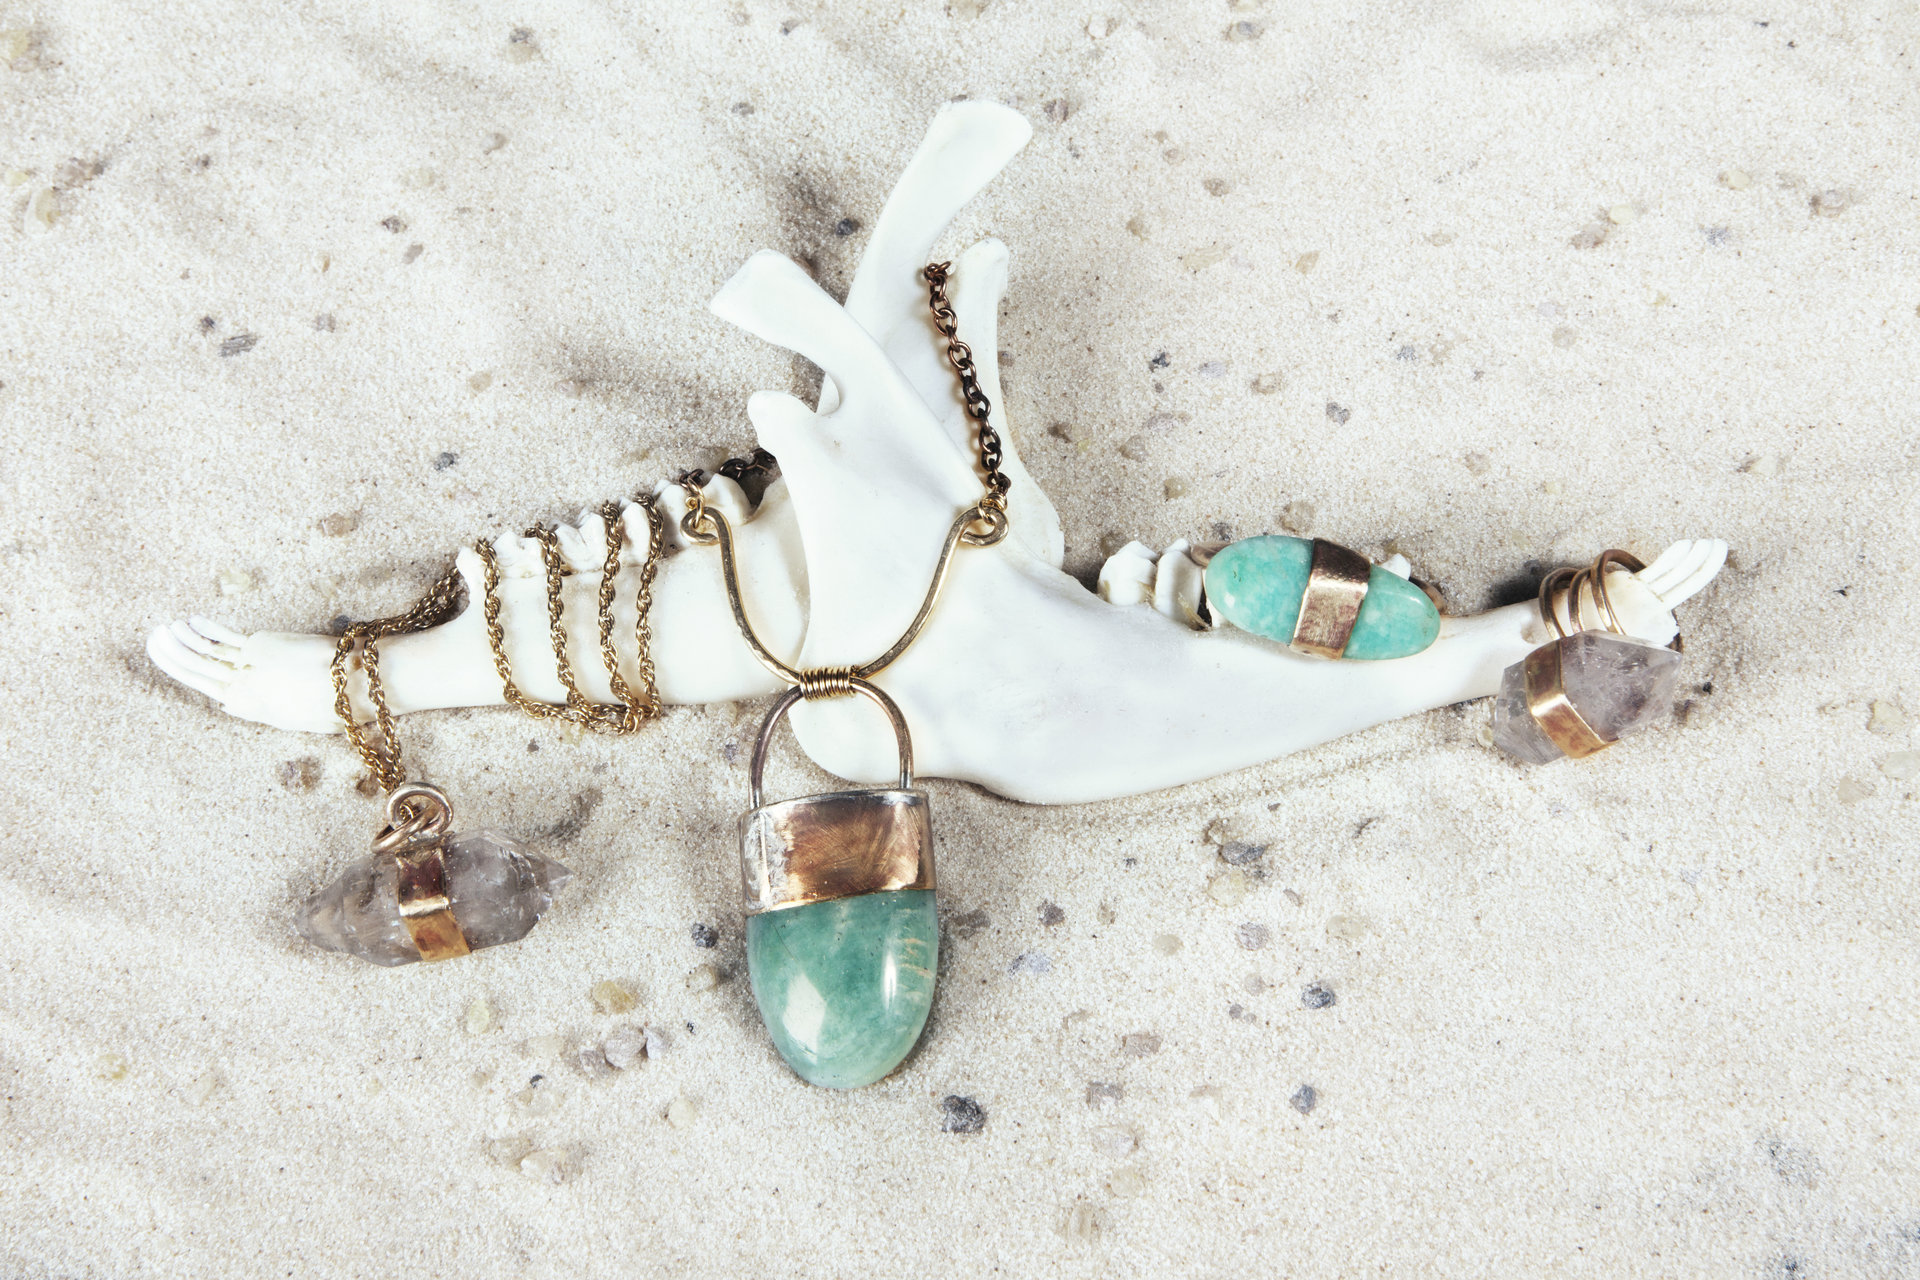 Promotional images for  Miranda Hope Jewelry   Involvement: Concept design, photography, styling, post production